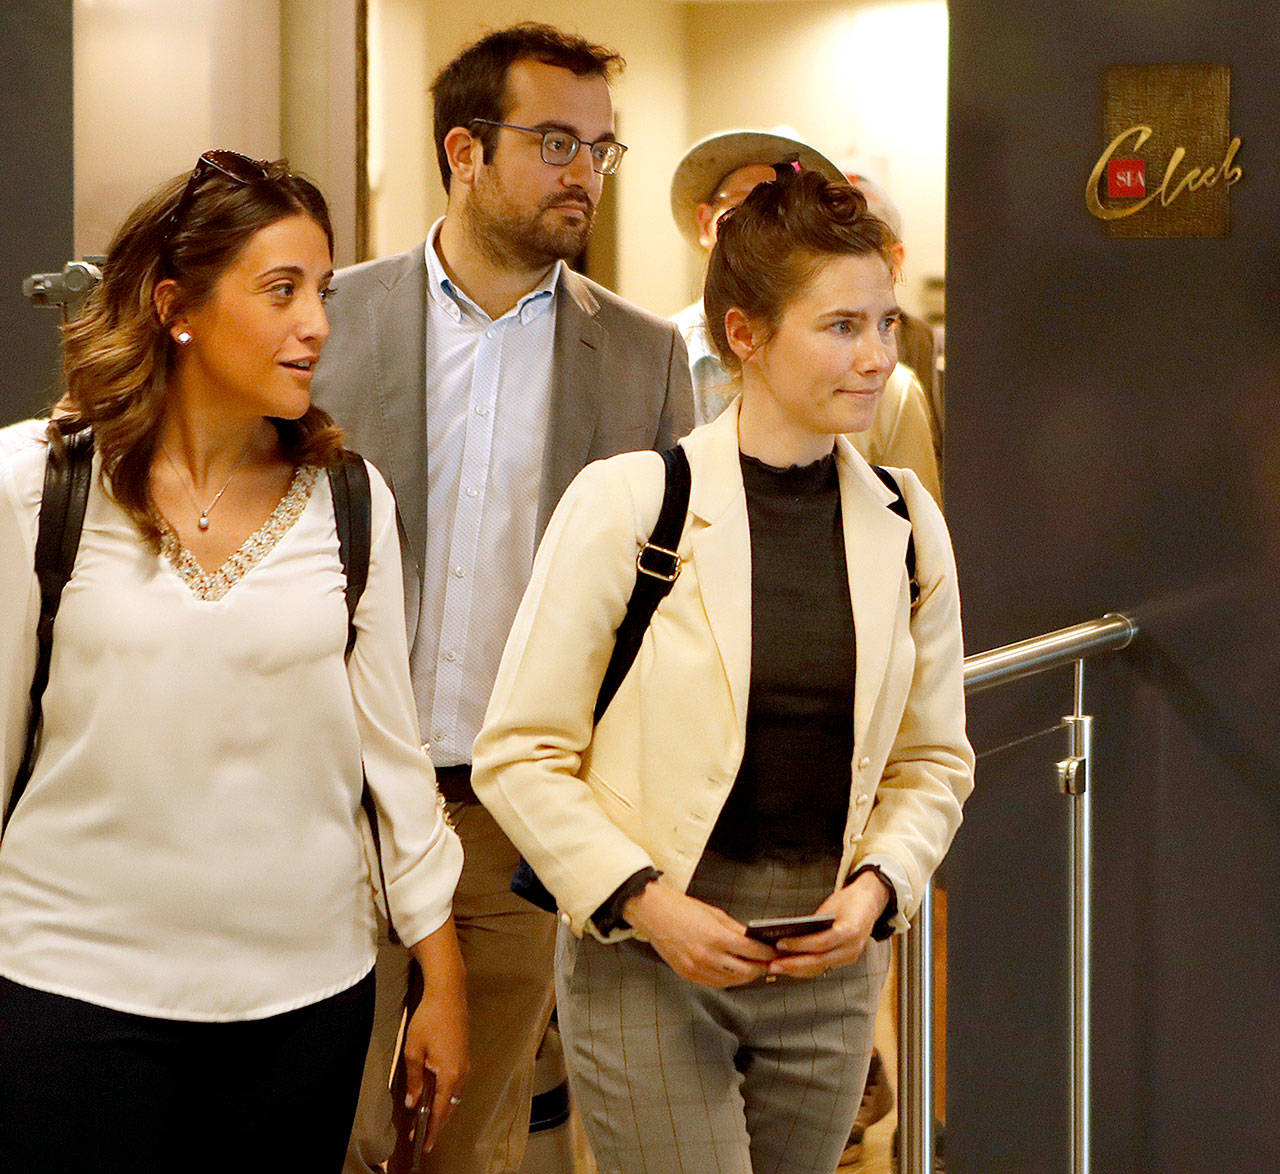 Amanda Knox (right) exits the airport from a side entrance upon her arrival in Milan, Italy, on Thursday. She has returned to Italy for the first time since she was convicted and imprisoned, but ultimately acquitted, for the murder and sexual assault of her British roommate. Knox will attend a conference rganized by the Italy Innocence Project, which seeks to help people who have been convicted for crimes they did not commit. (AP Photo/Antonio Calanni)